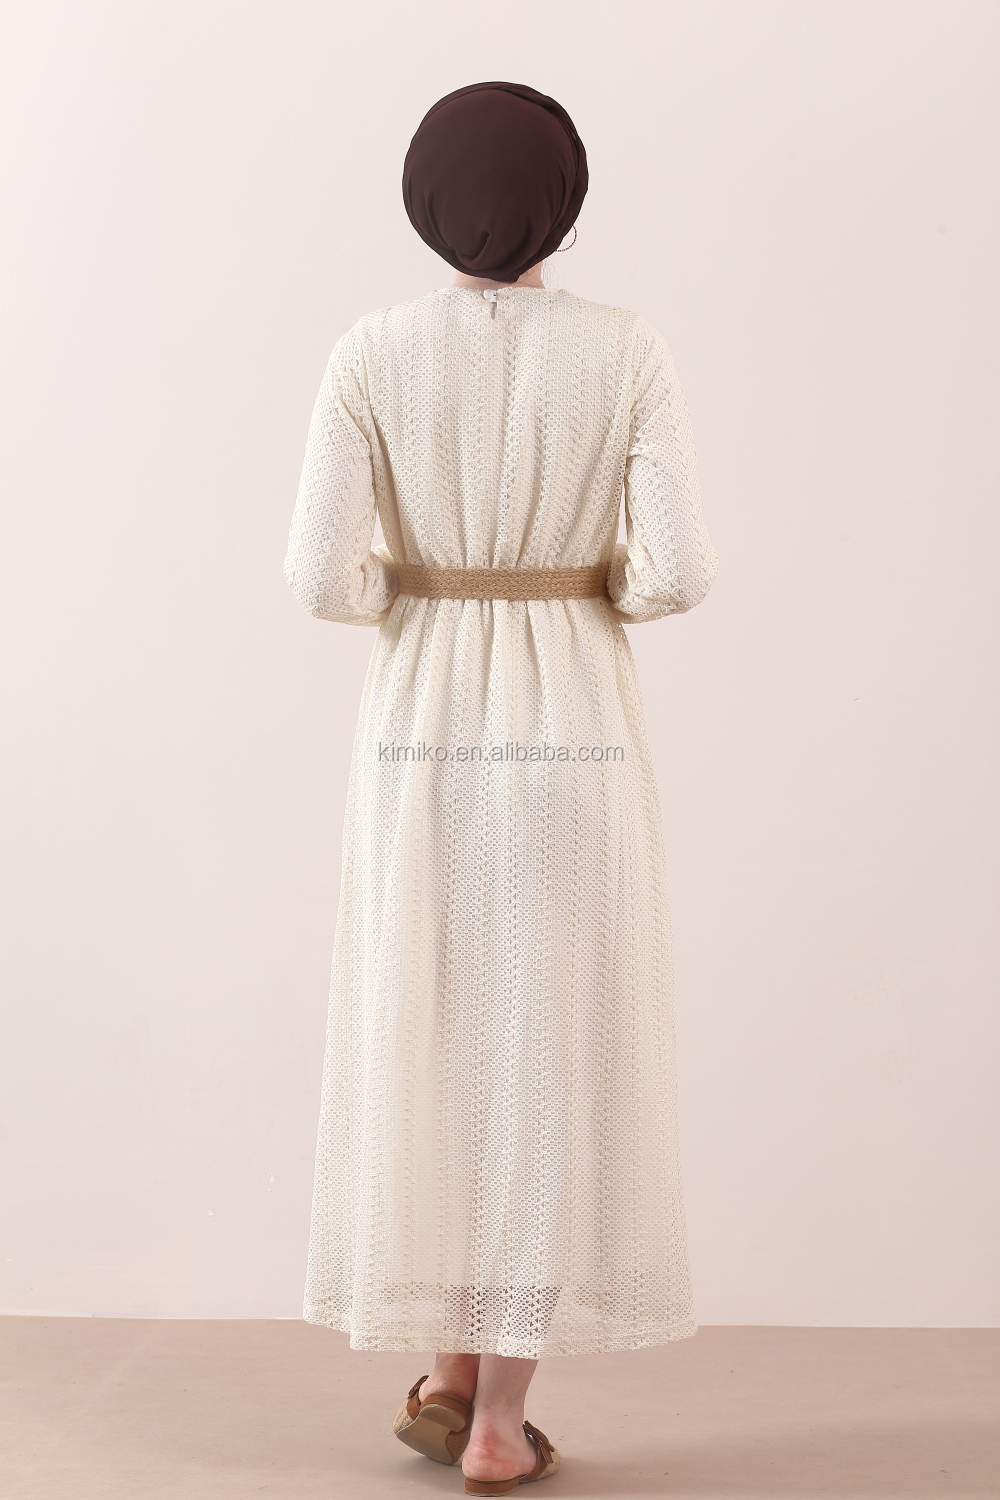 New Design Mesh Lace White Collect Waist Maxi Dress For Women